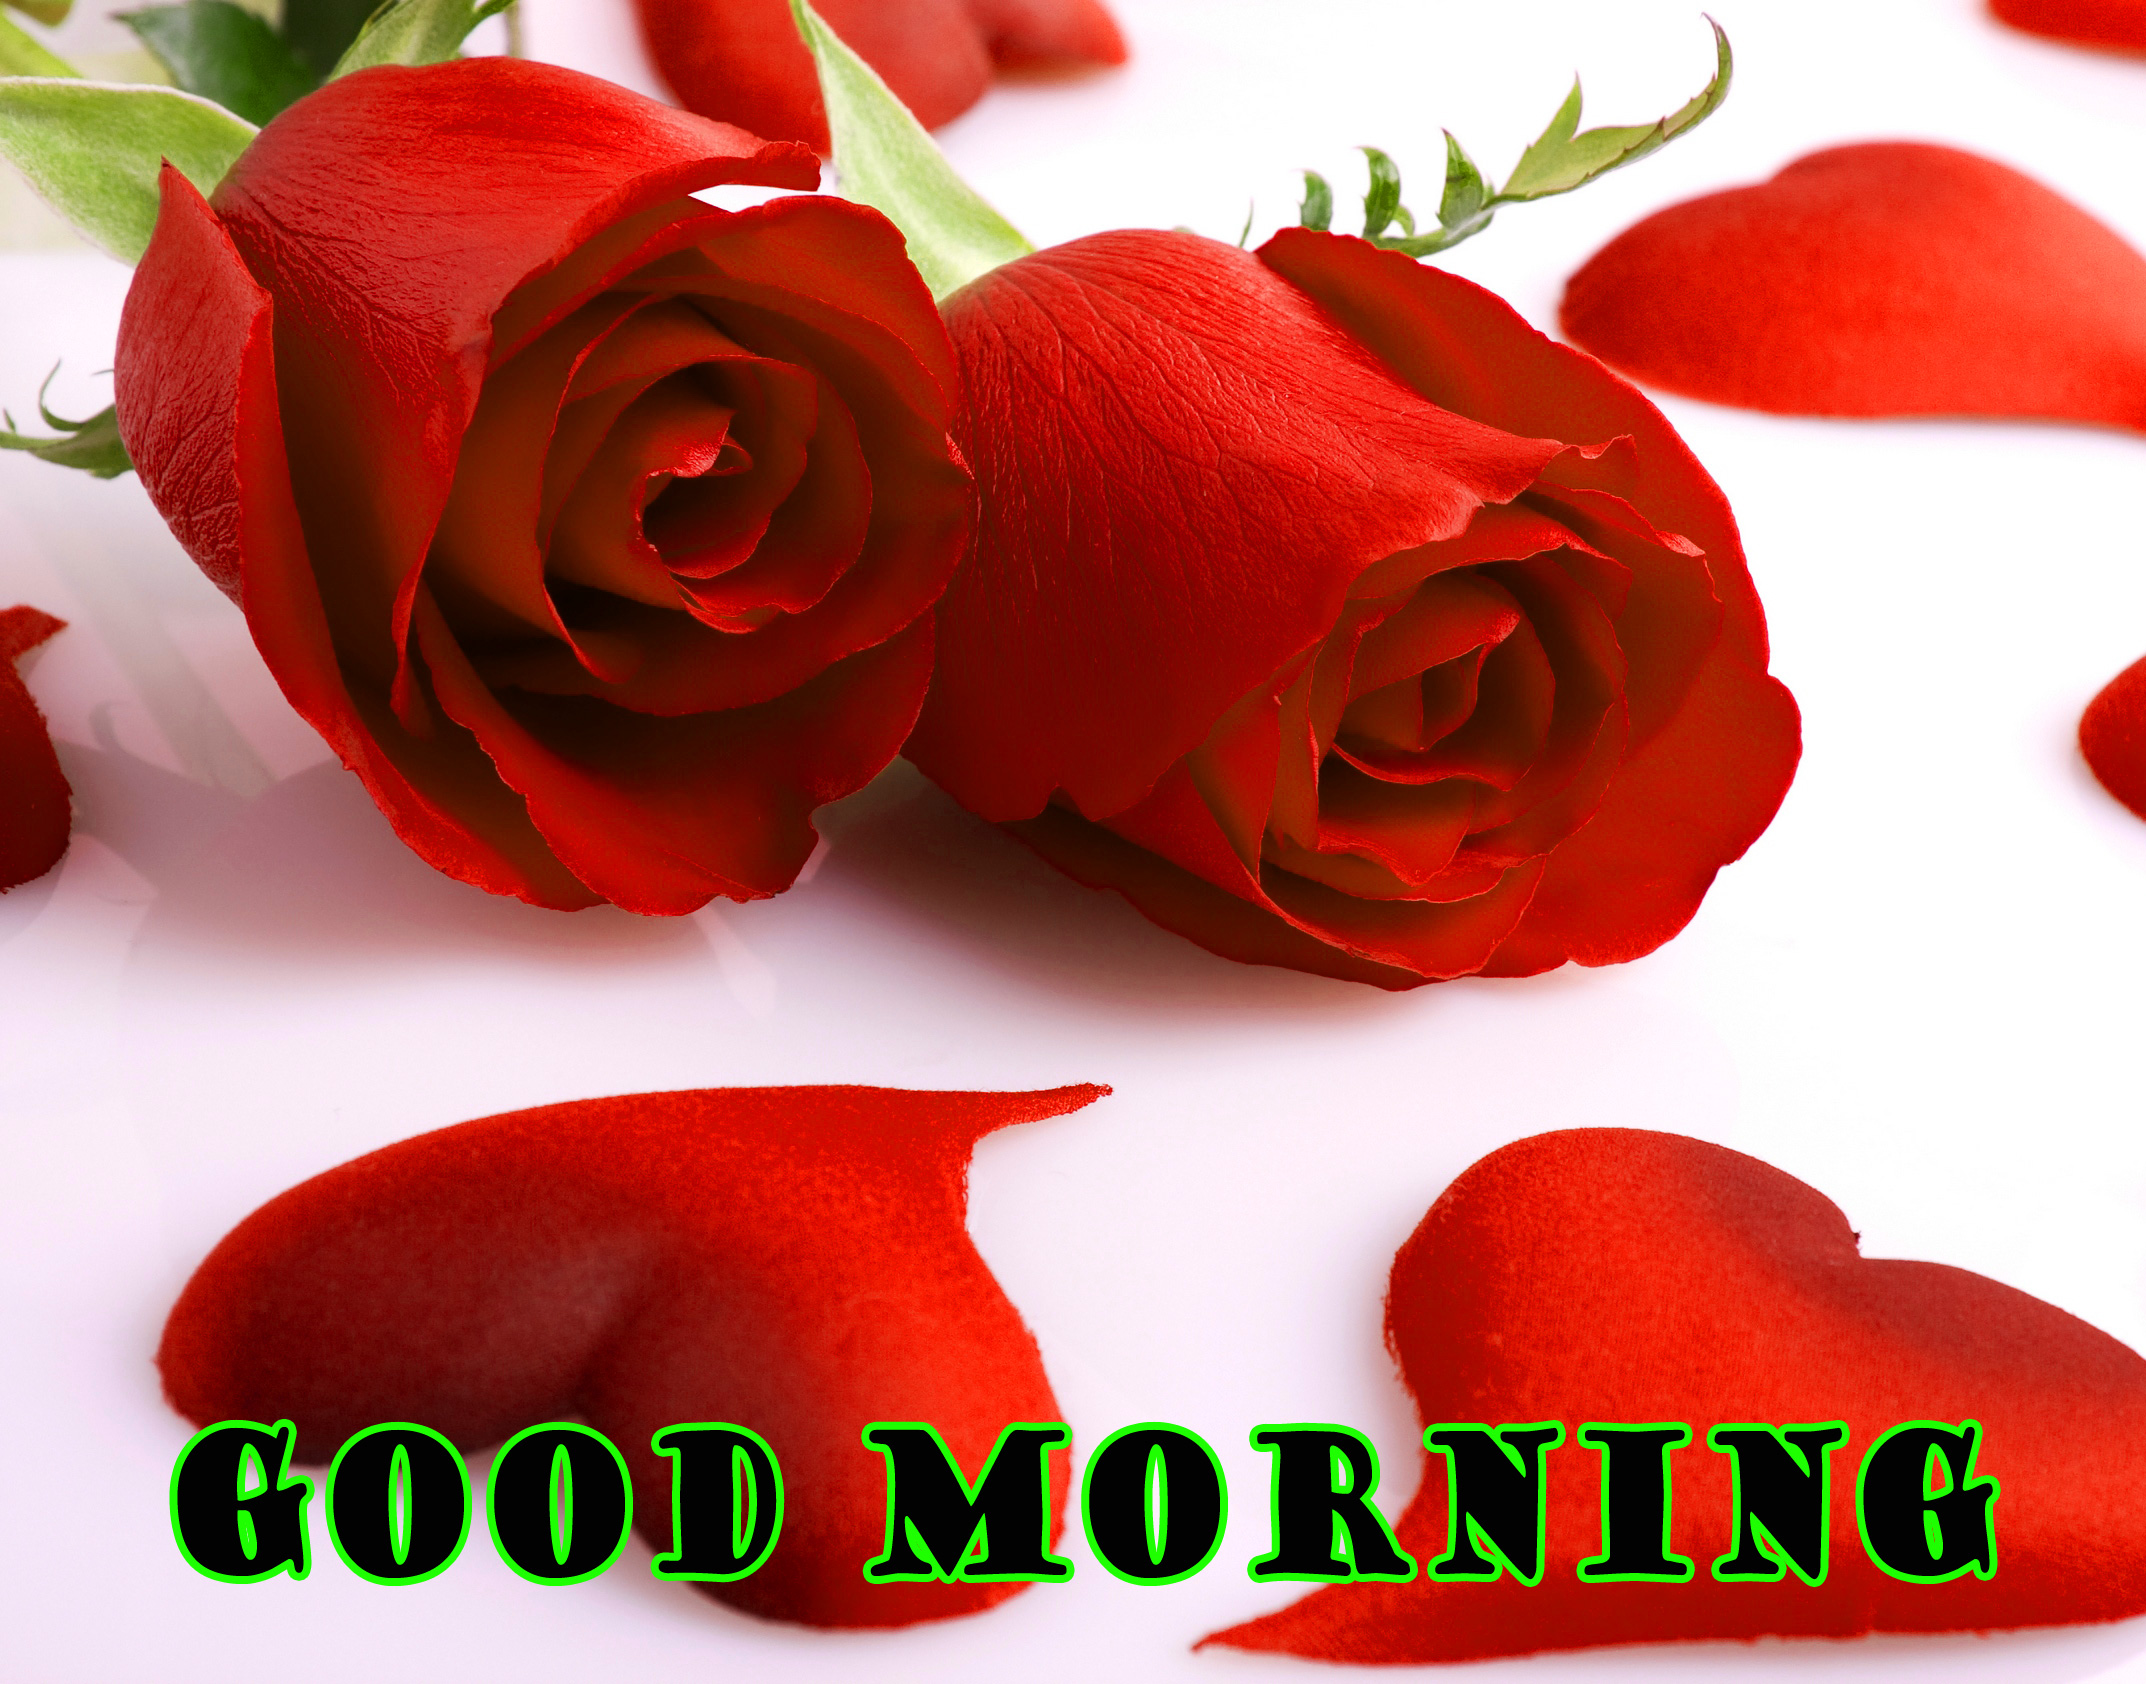 Good Morning Red Rose Pictures Images Photo Free Hd - Red Rose Good Morning , HD Wallpaper & Backgrounds